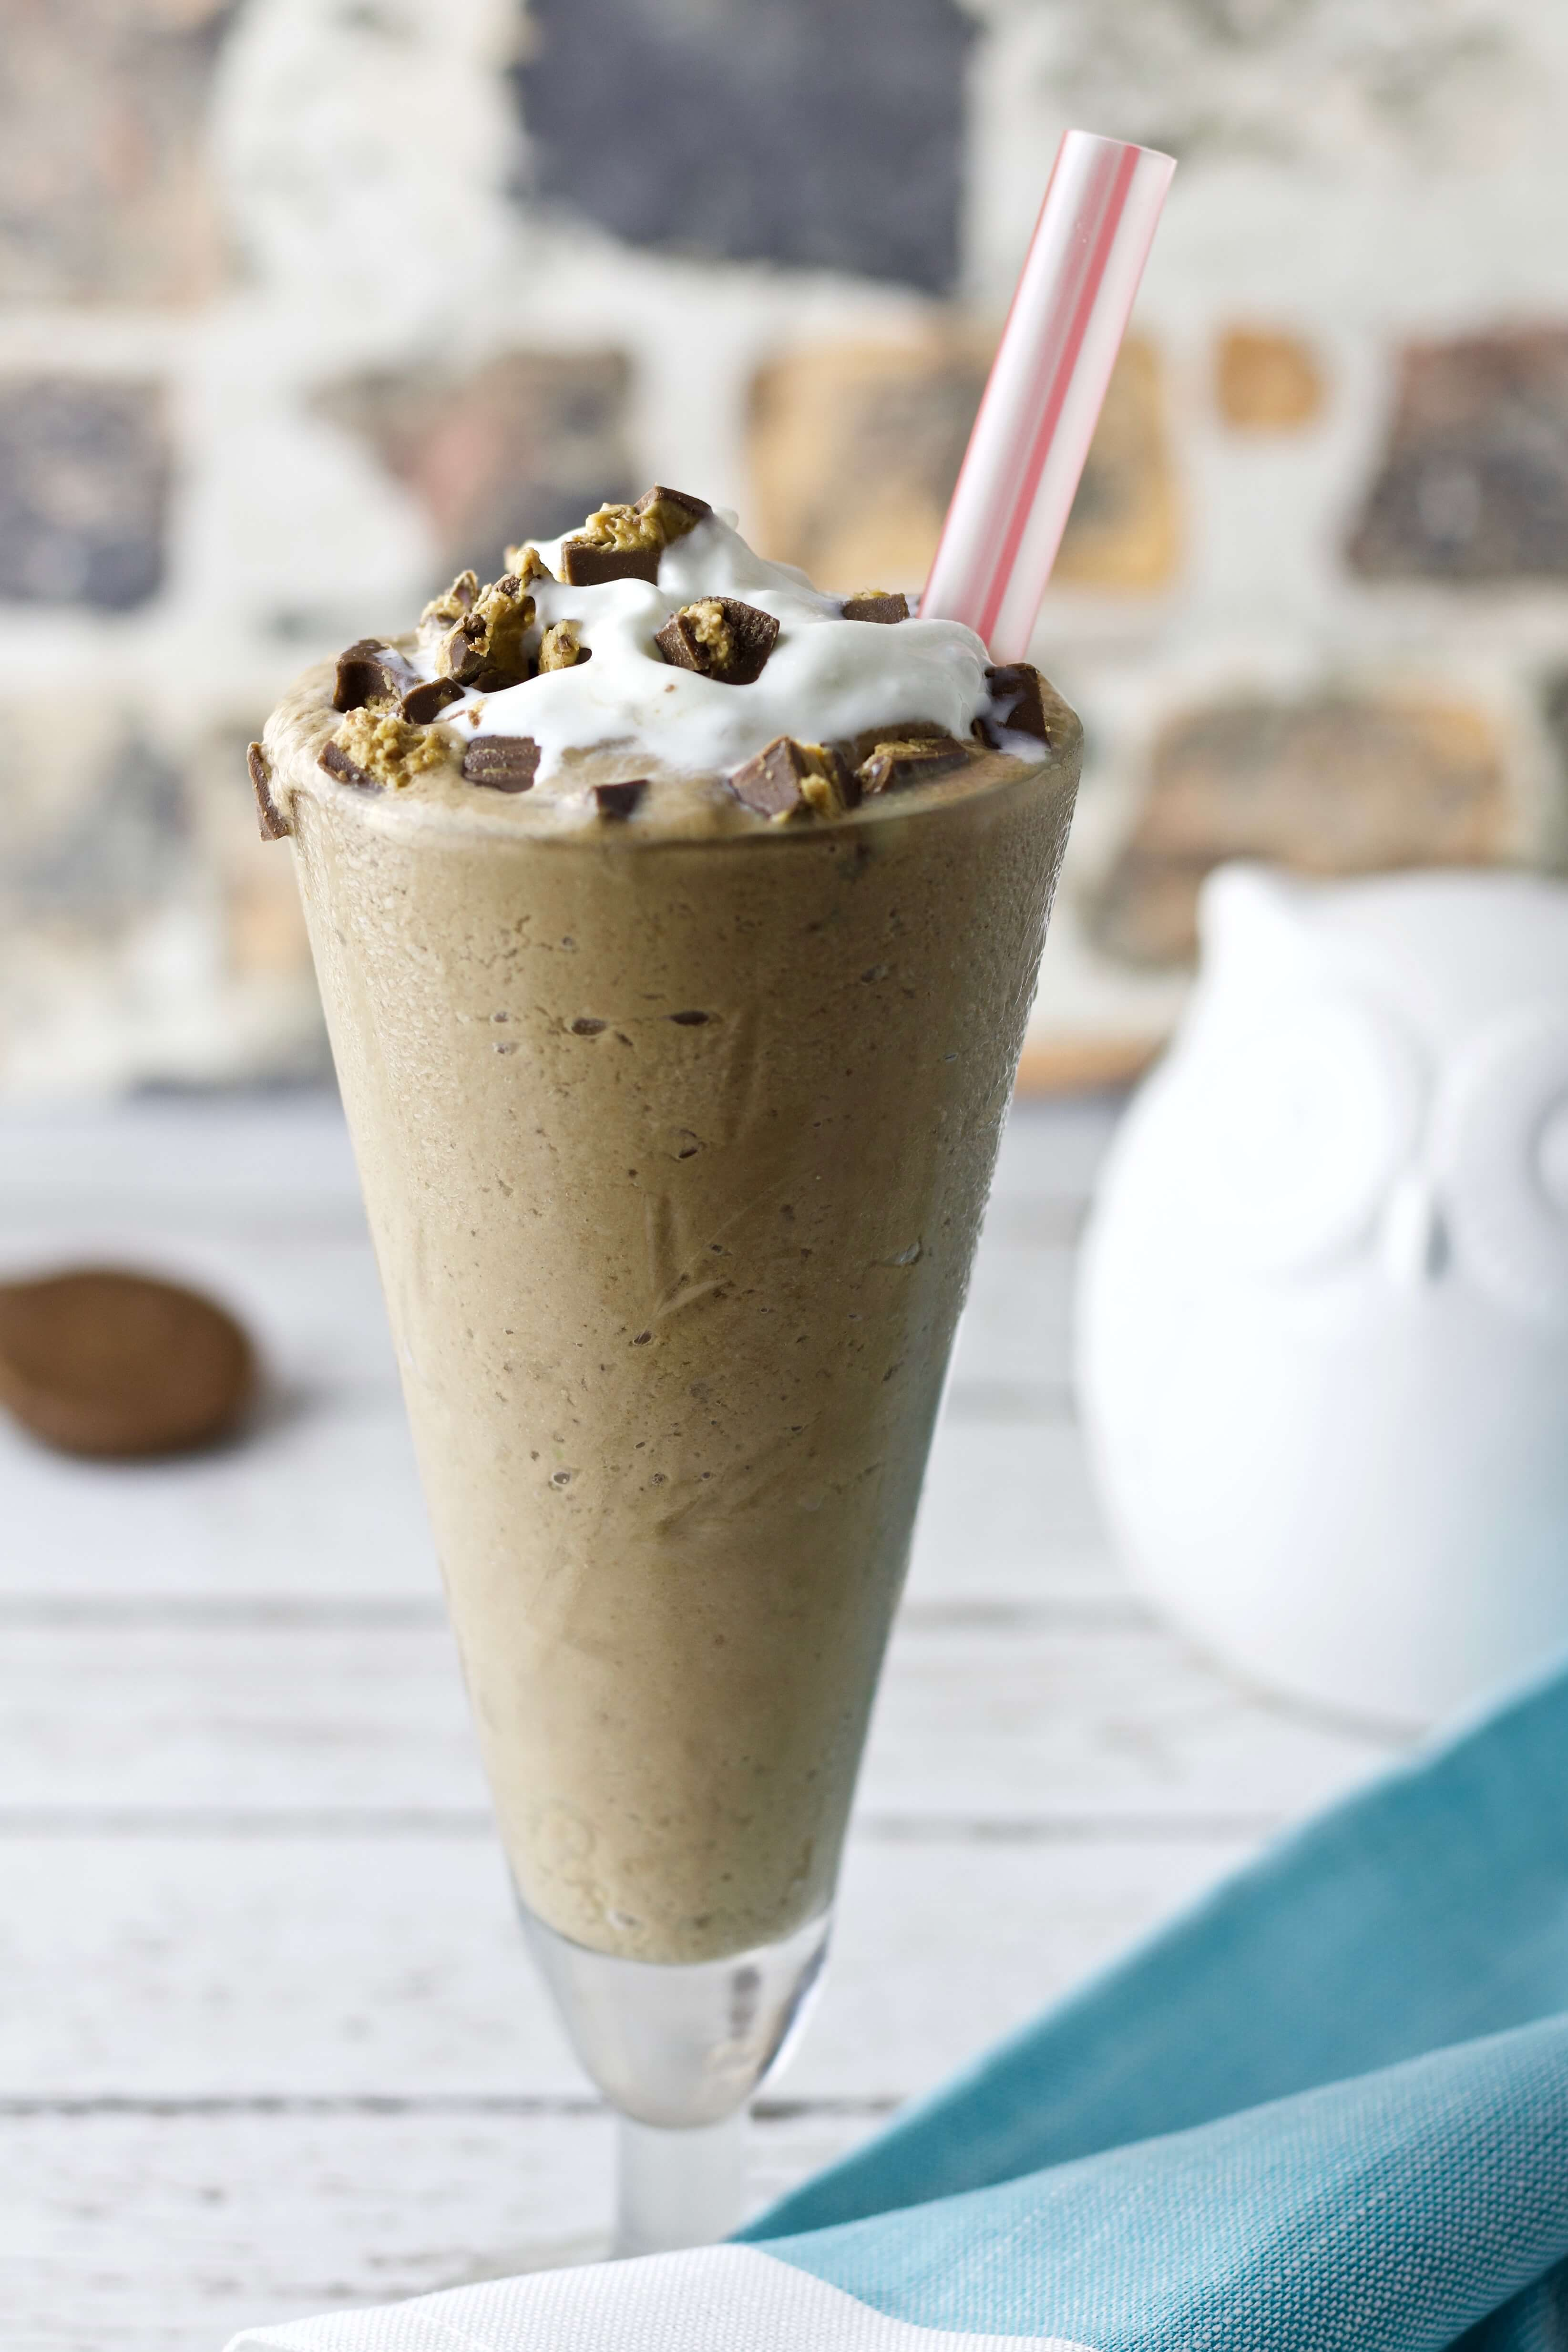 Easy Keto Fat Bomb Reese's Cup Milkshake With Straw